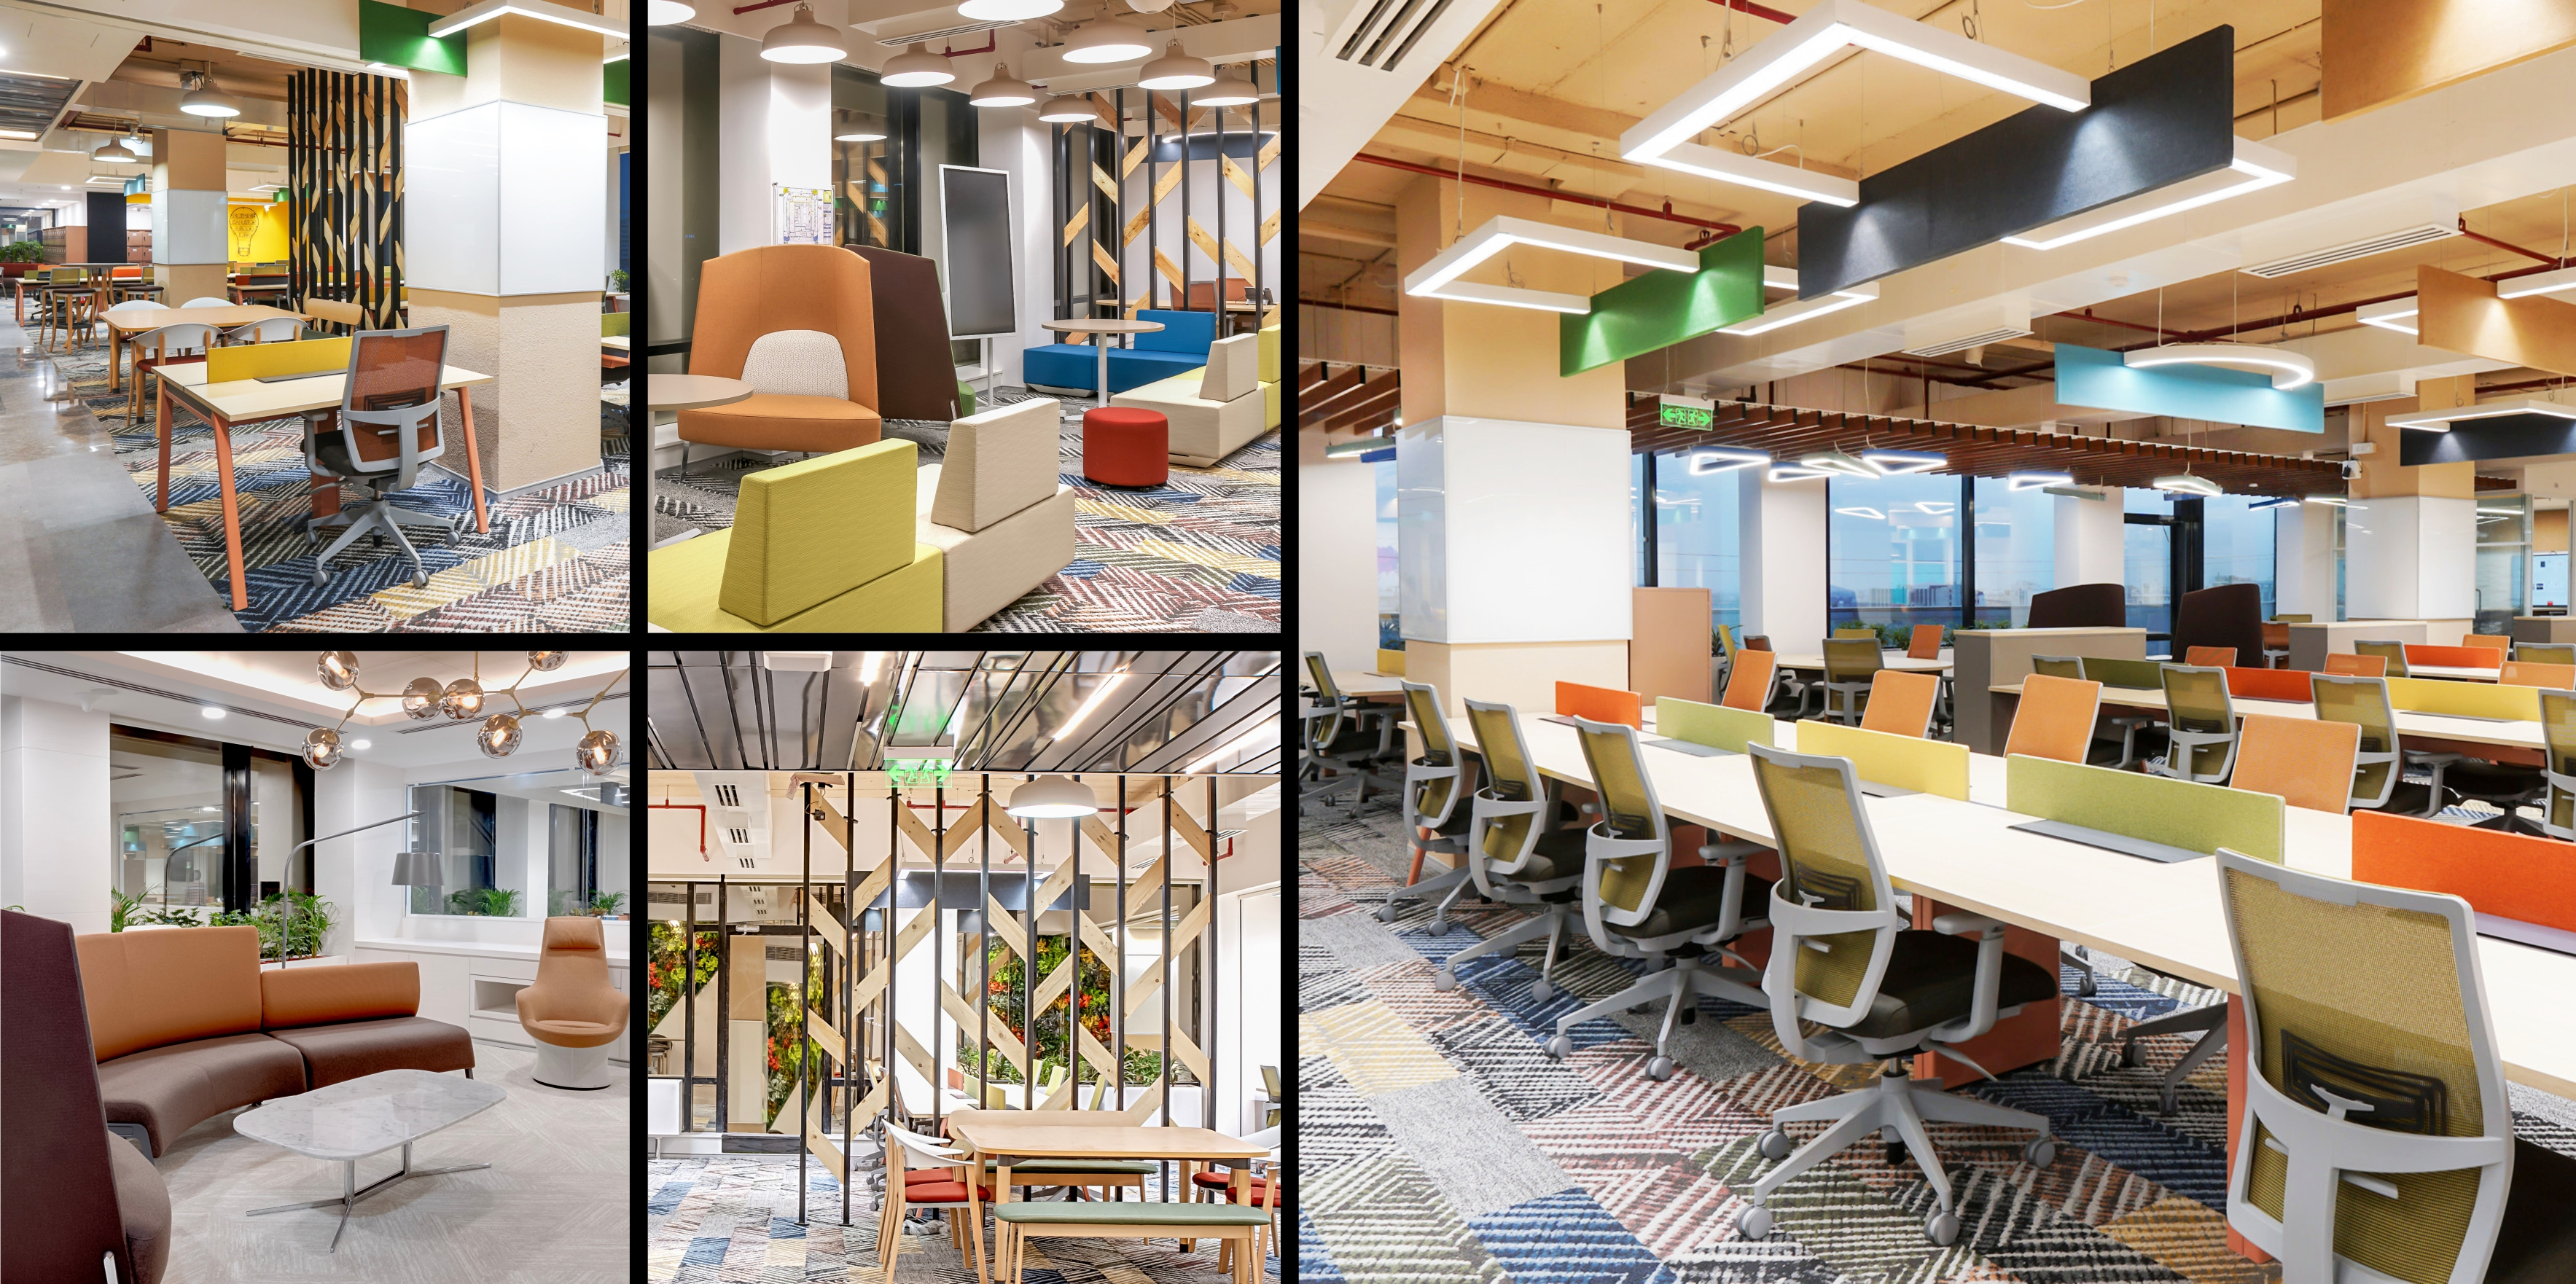 Rarely does a design firm get an opportunity to be truly creative and yet practical. For Architect Vistasp & Associates, this project was the one it had longed for.